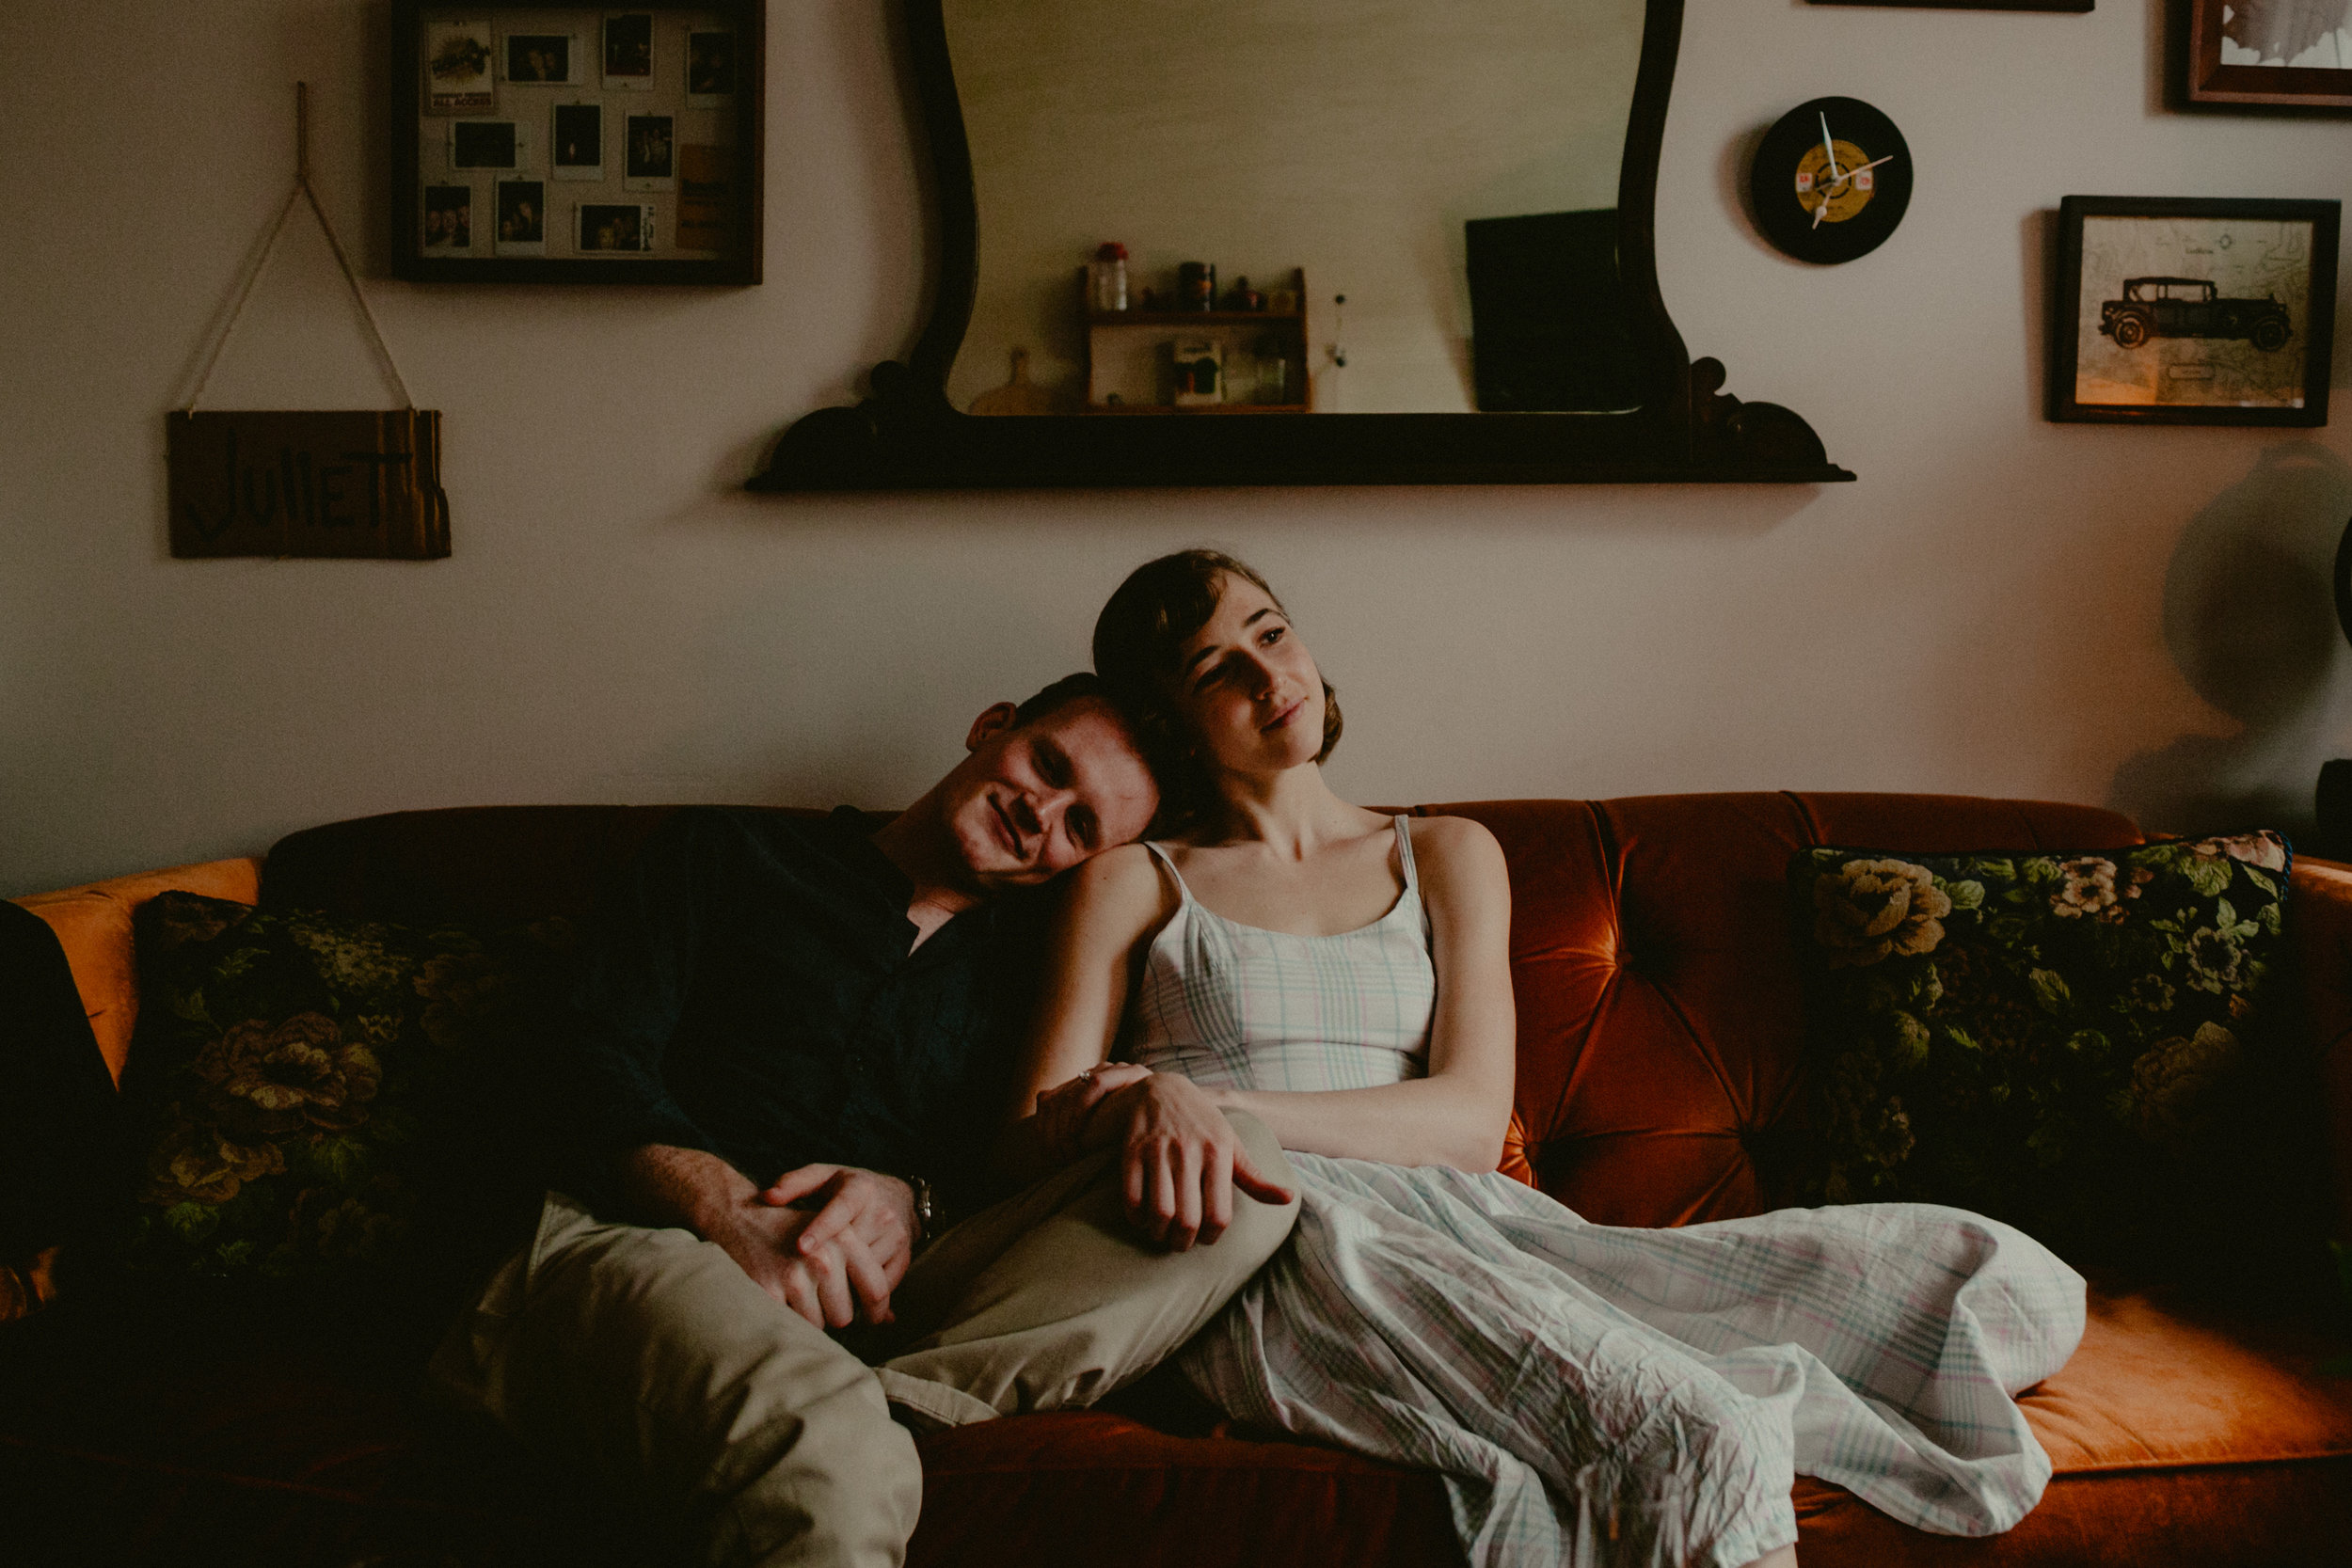 Brooklyn_Wedding_Photographer_Chellise_Michael_Photography-10.jpg